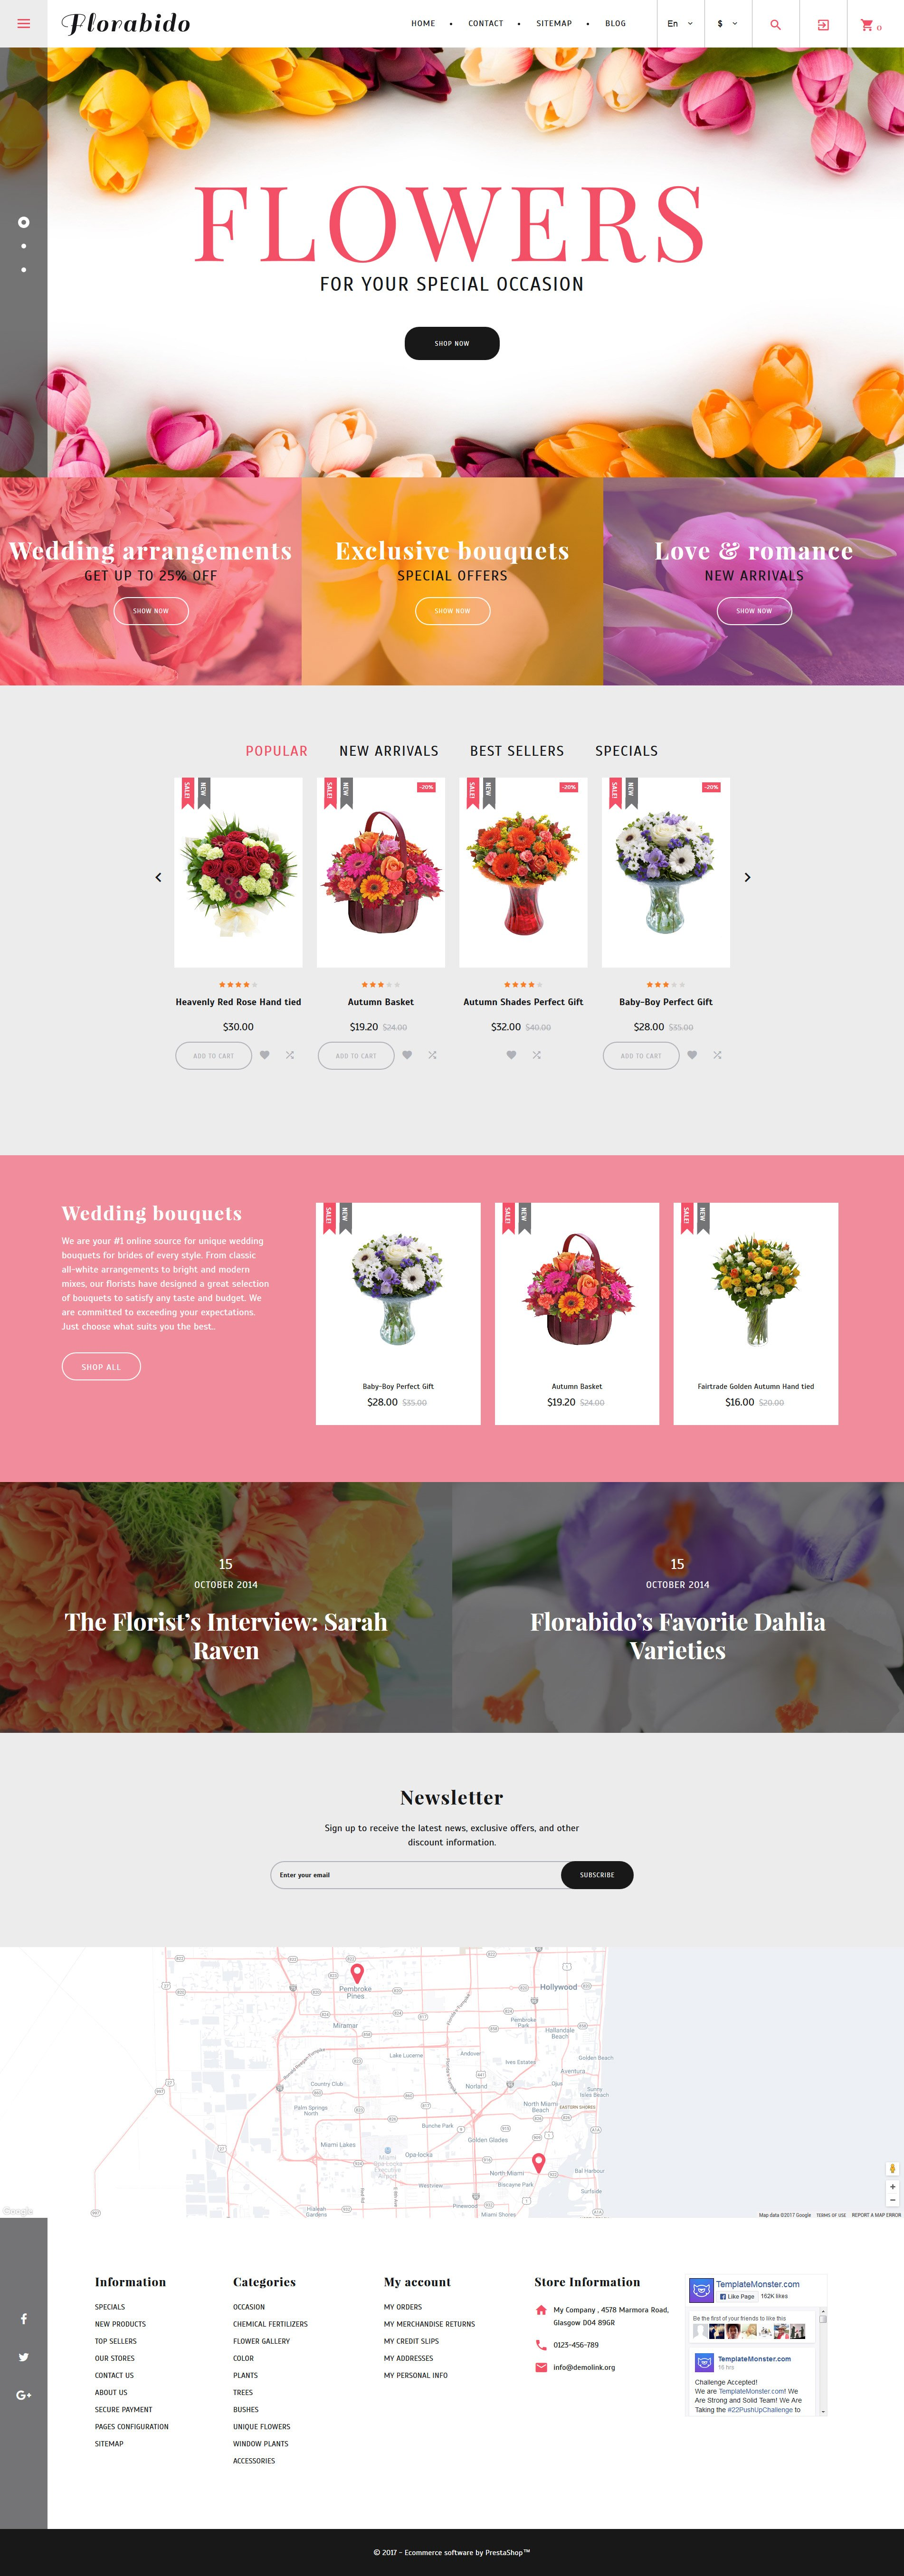 Website Design Template 62258 - online shop store flowers gifts birthday wedding engagement occasions specials exclusive roses lilies orchid chrysanthemum tulip order services packing present cards holiday celebration catalog delivery chamomile daisy bouquet wrapping